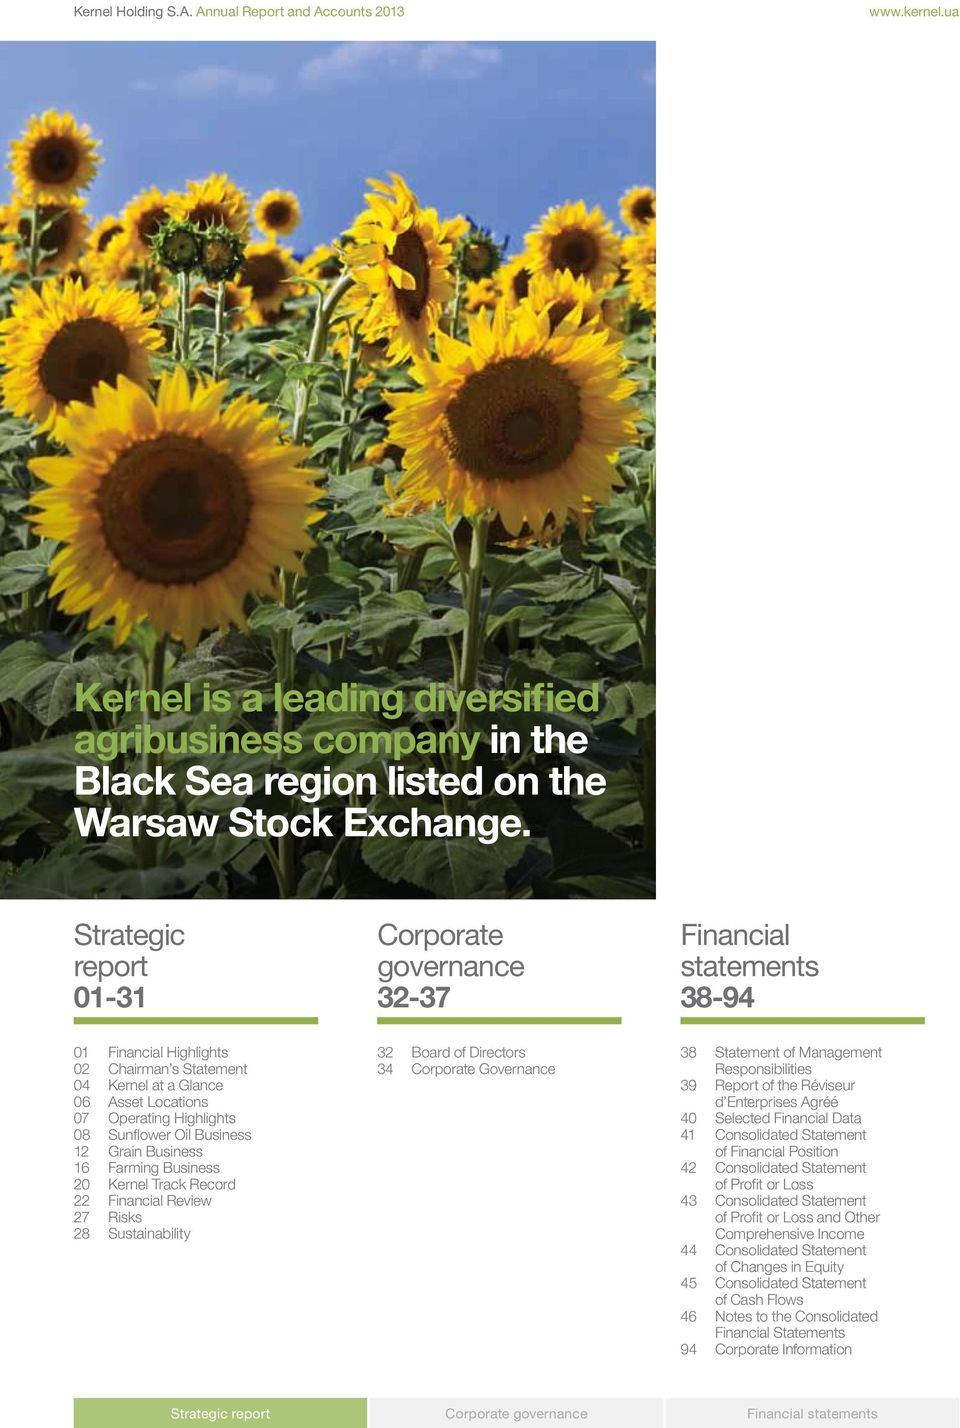 Sunflower Oil Business 12 Grain Business 16 Farming Business 20 Kernel Track Record 22 Financial Review 27 Risks 28 Sustainability 32 Board of Directors 34 Corporate Governance 38 Statement of